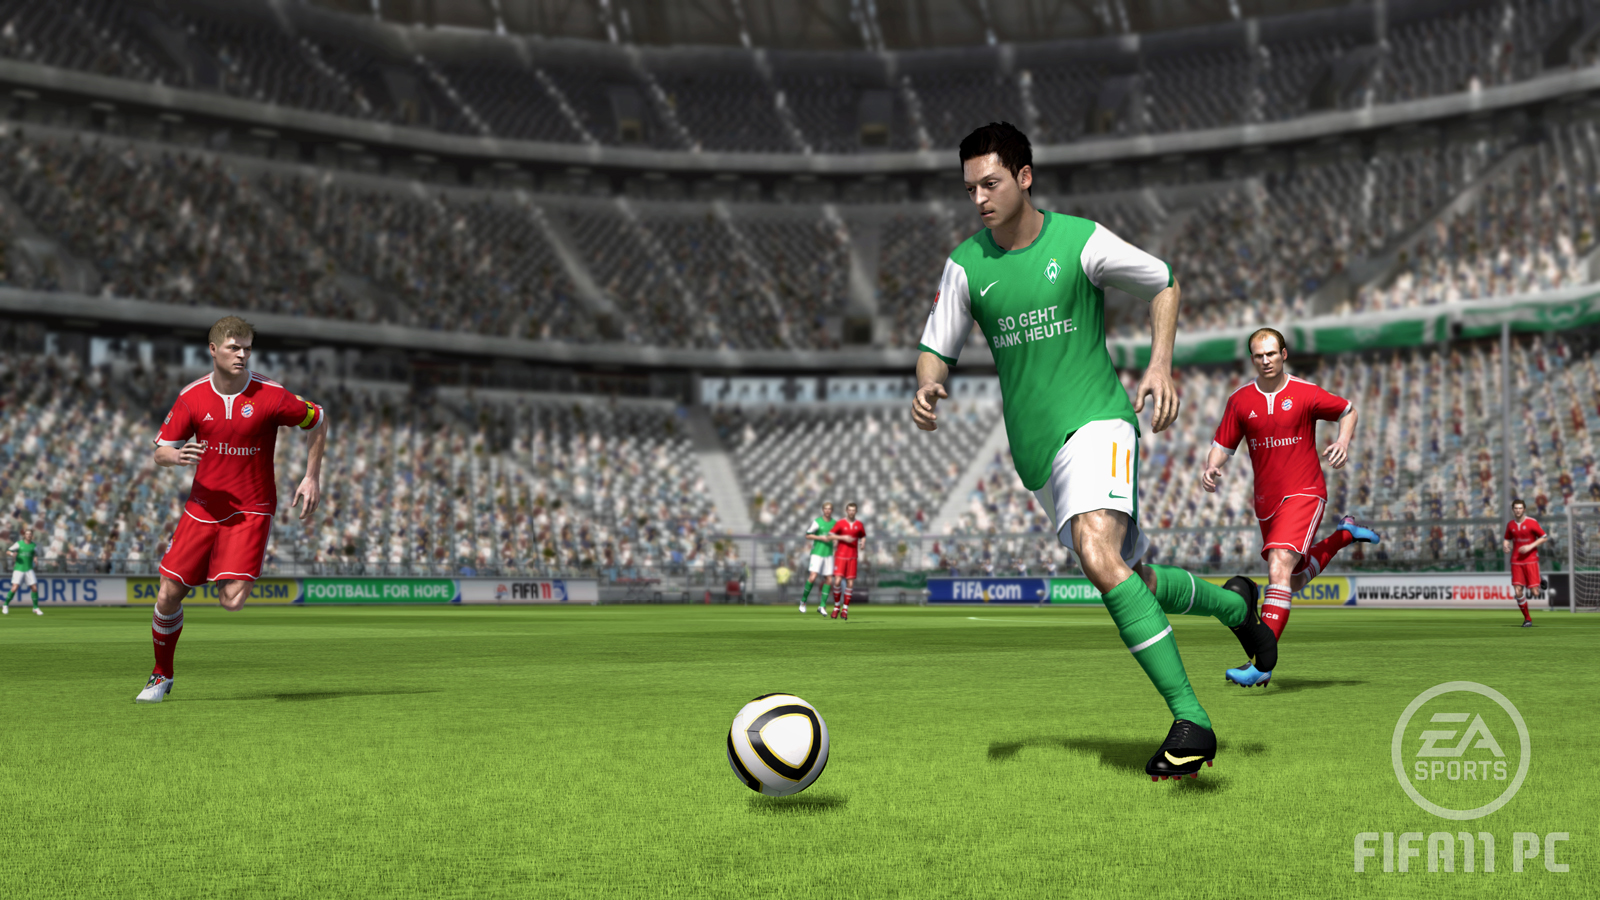 Soccer style 2010 online game